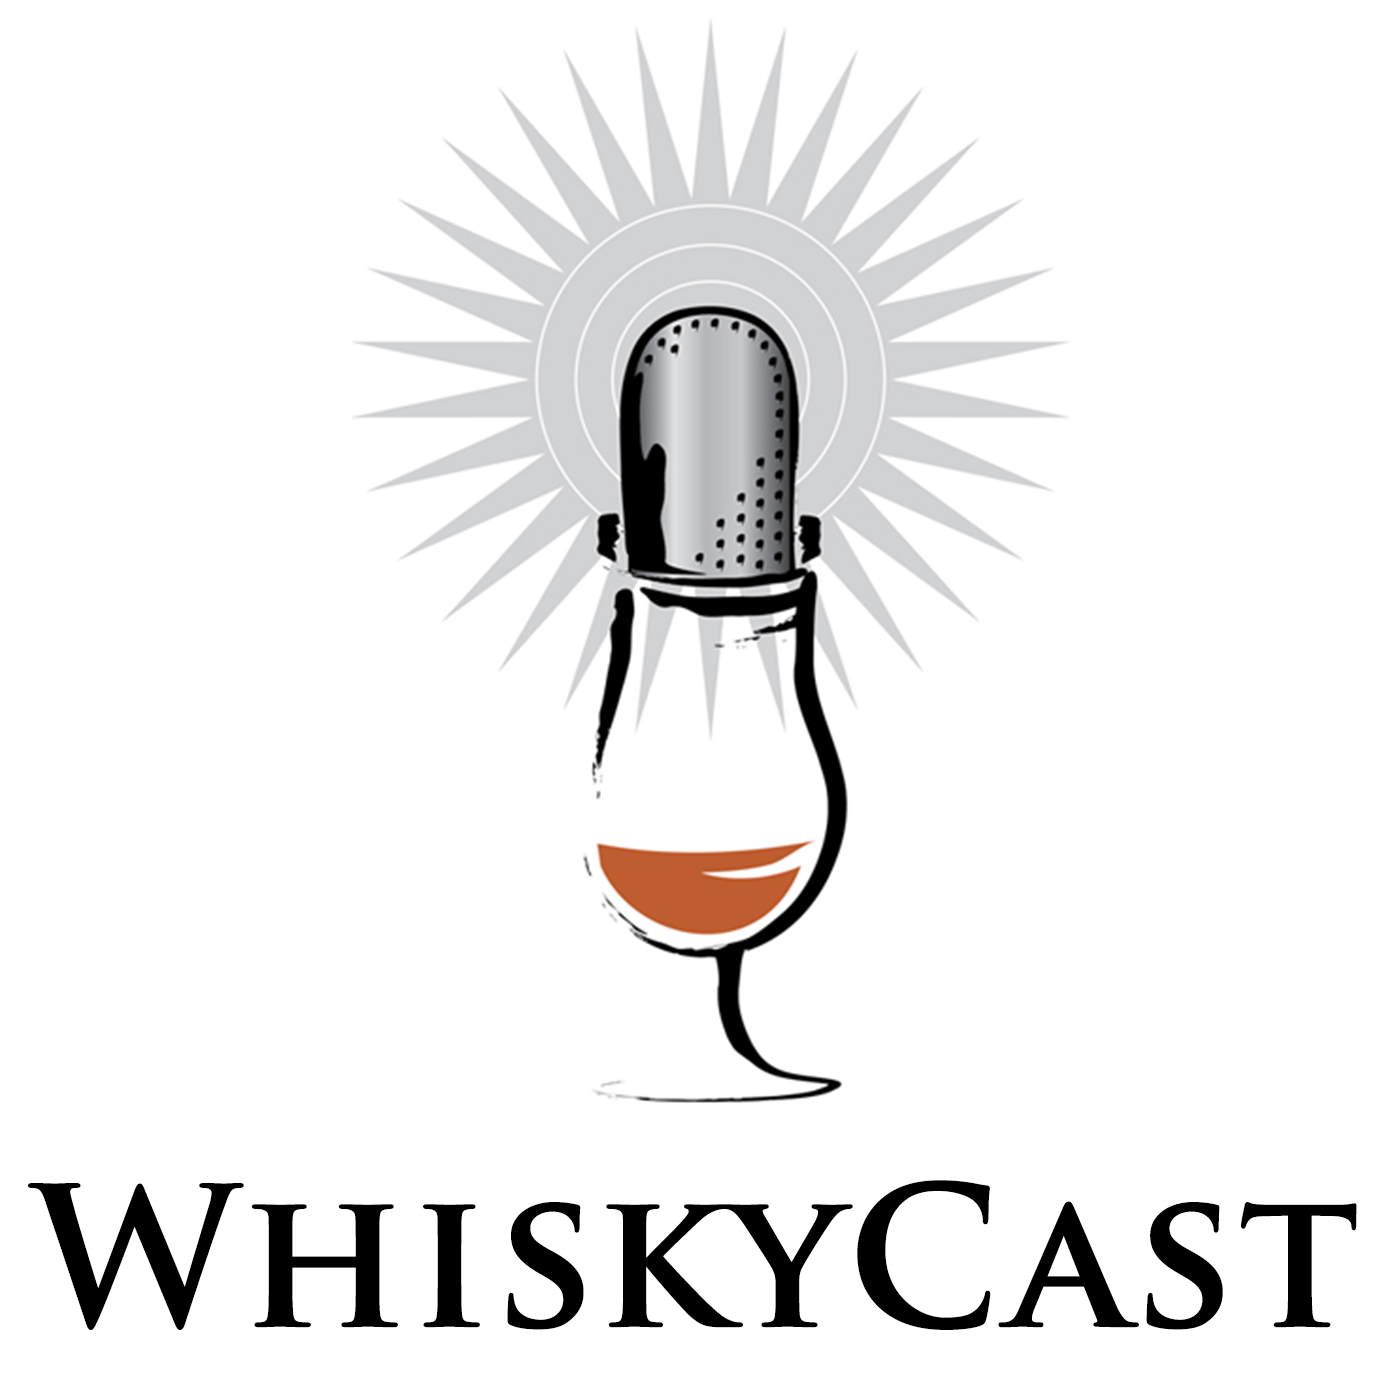 WhiskyCast Episode 425: May 19, 2013